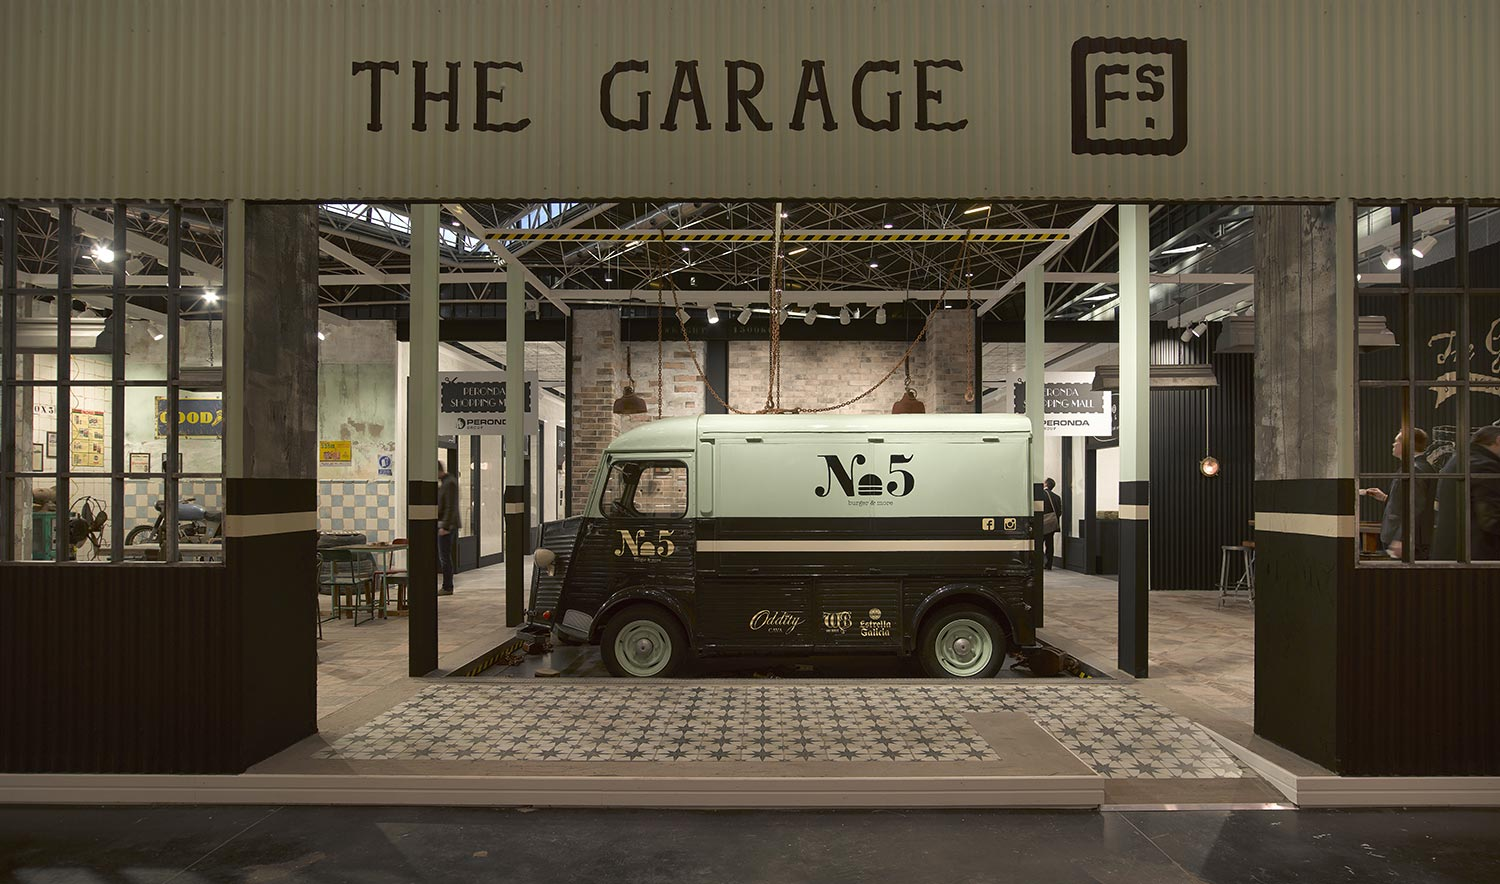 THE GARAGE. Espacio Francisco Segarra Cevisama 2016.